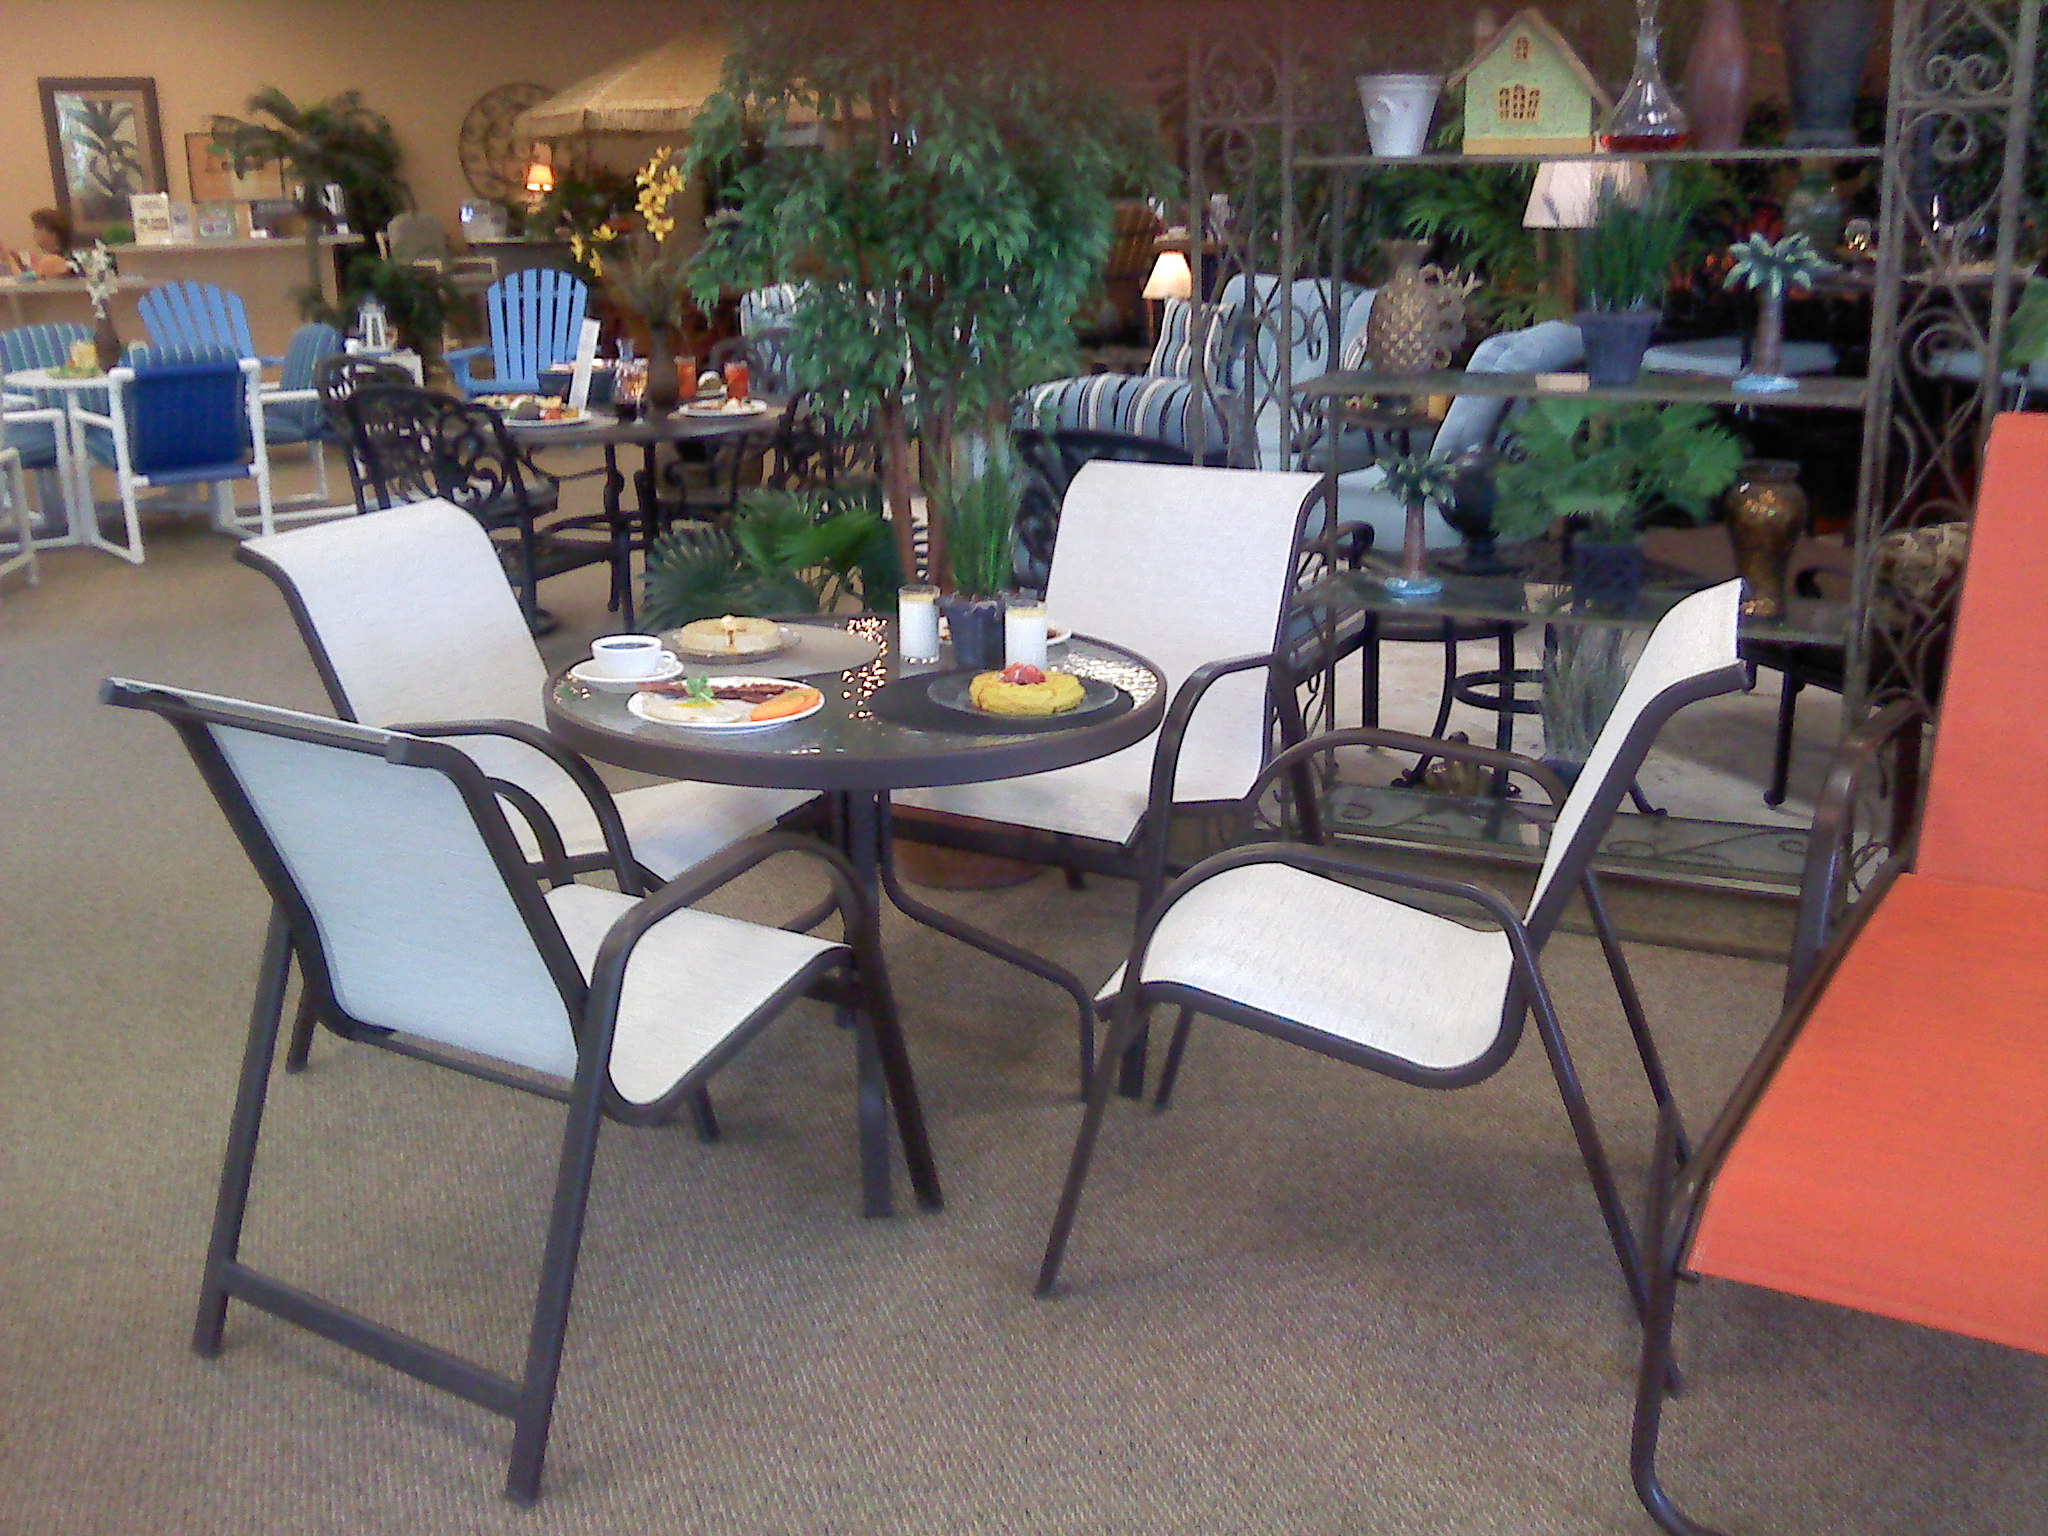 Or Nice List Outdoor Furniture Materials